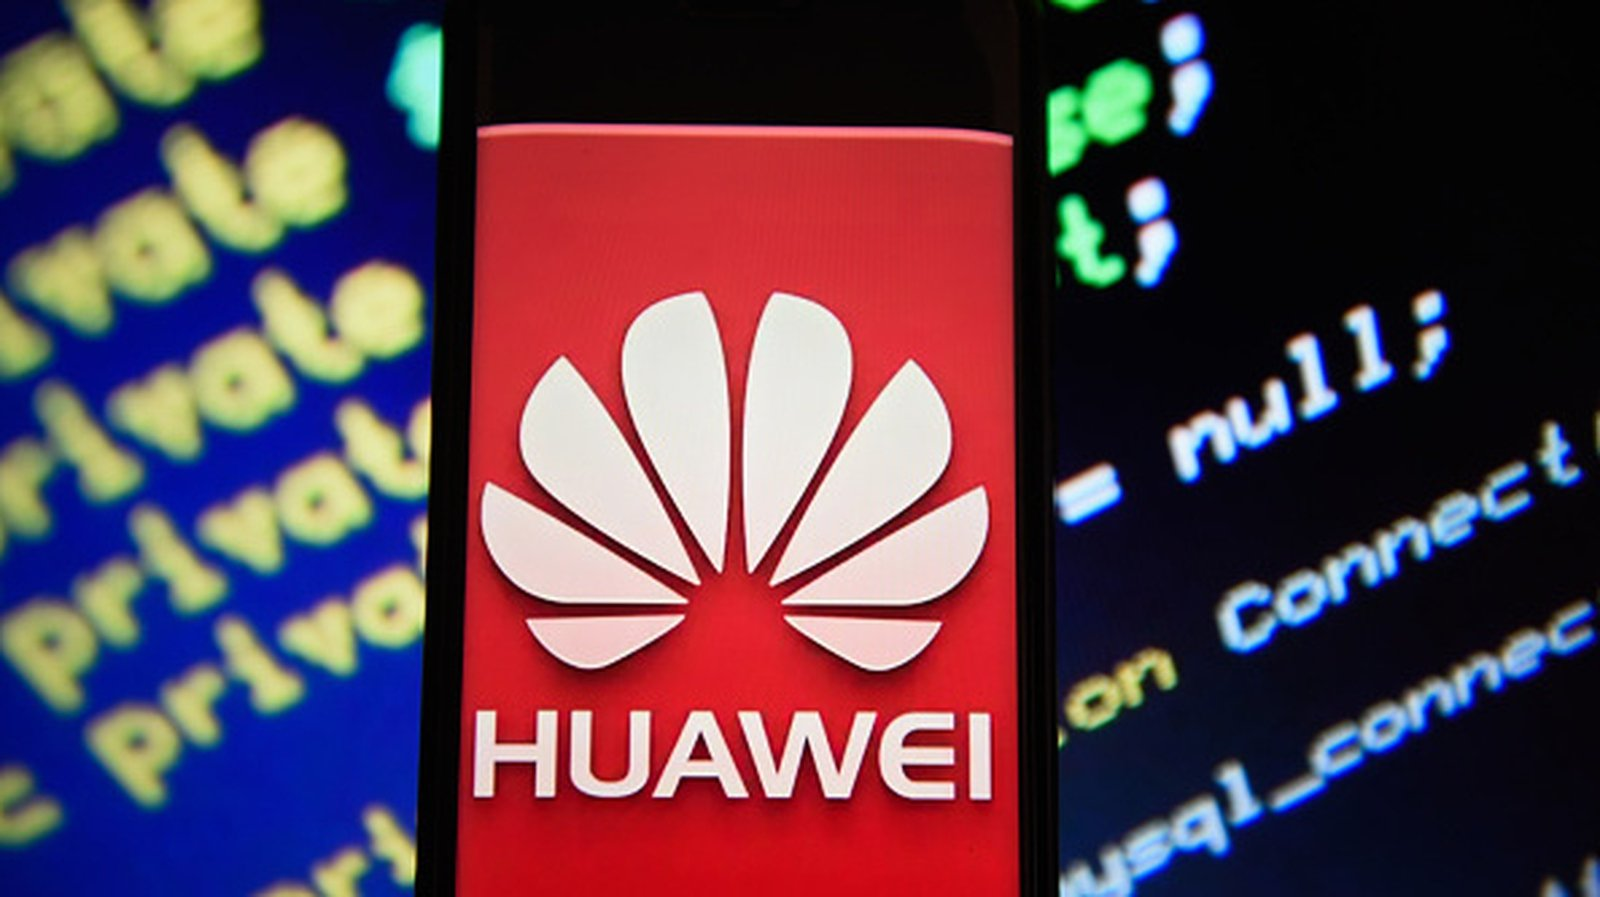 Intel gets US licences to supply products to Huawei